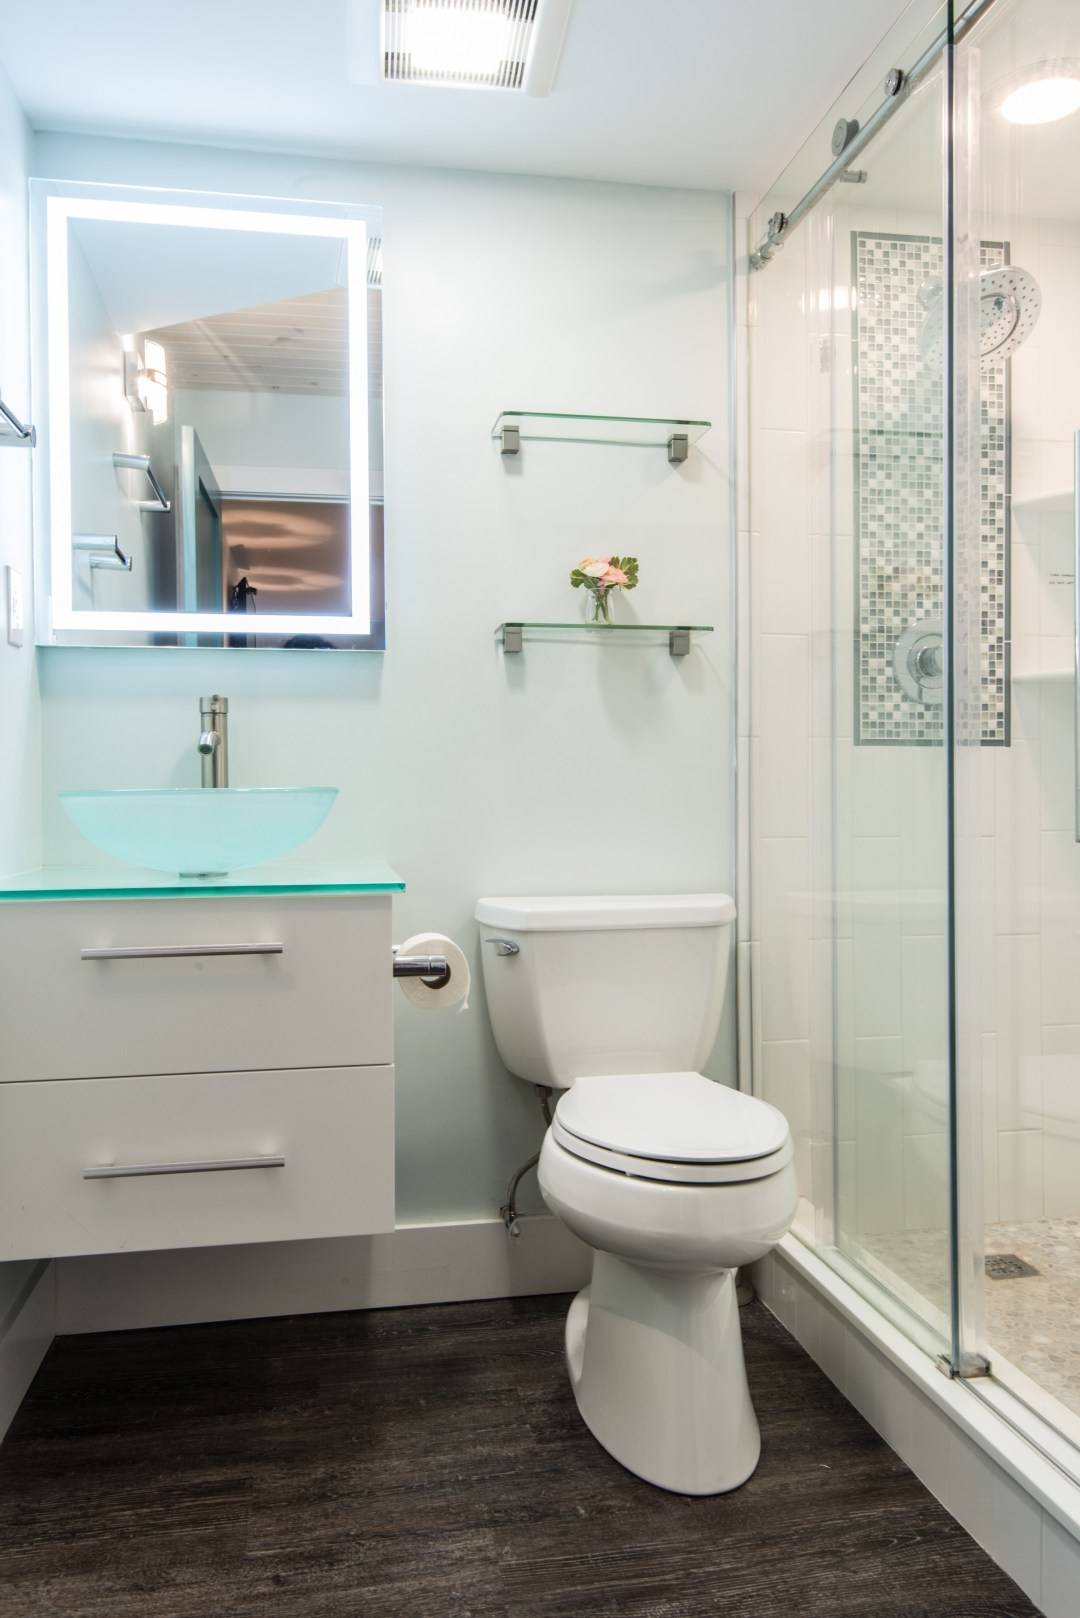 Bathroom Remodel in Sea Colony, Bethany Beach DE with Floating White Gloss Vanity Cabinet, Glass Vessel Sink, Backlit Mirror